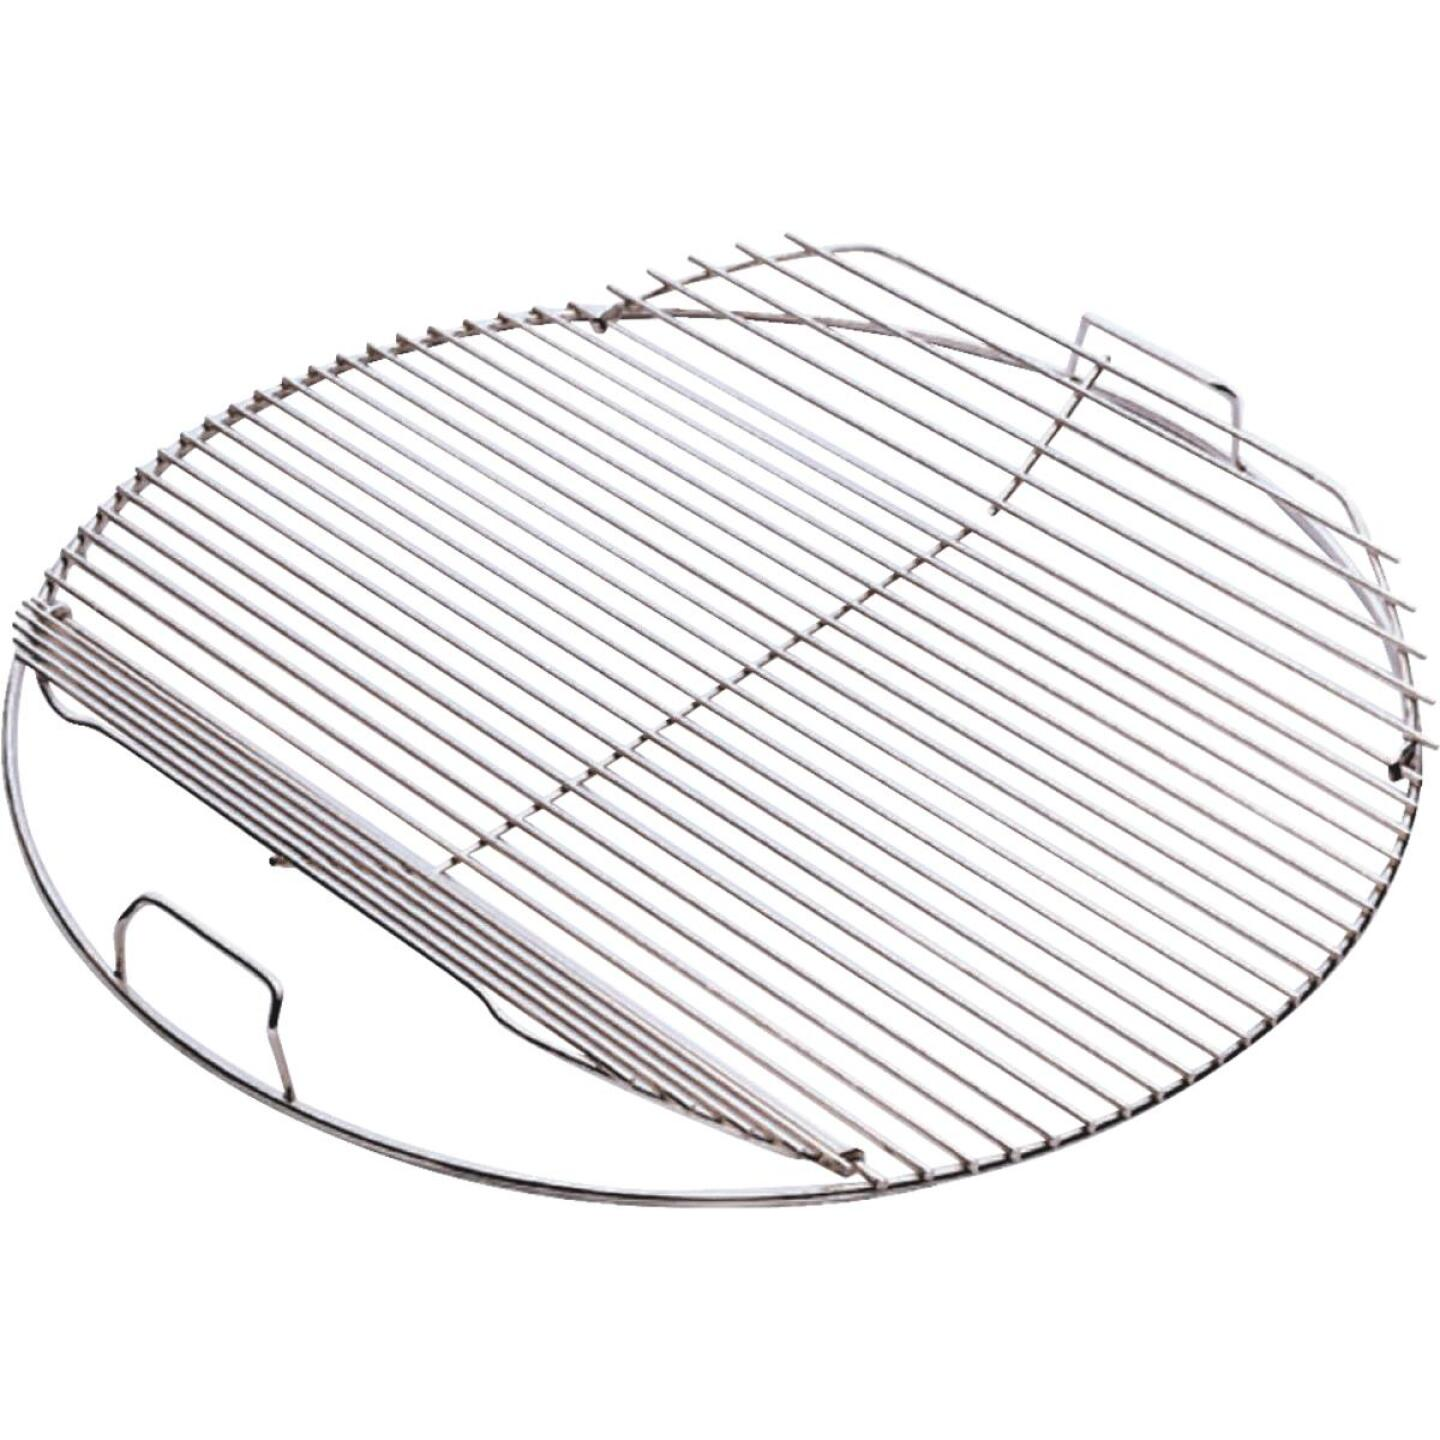 Weber 18.5 In. Dia. Plated-Steel Hinged Kettle Grill Grate Image 1